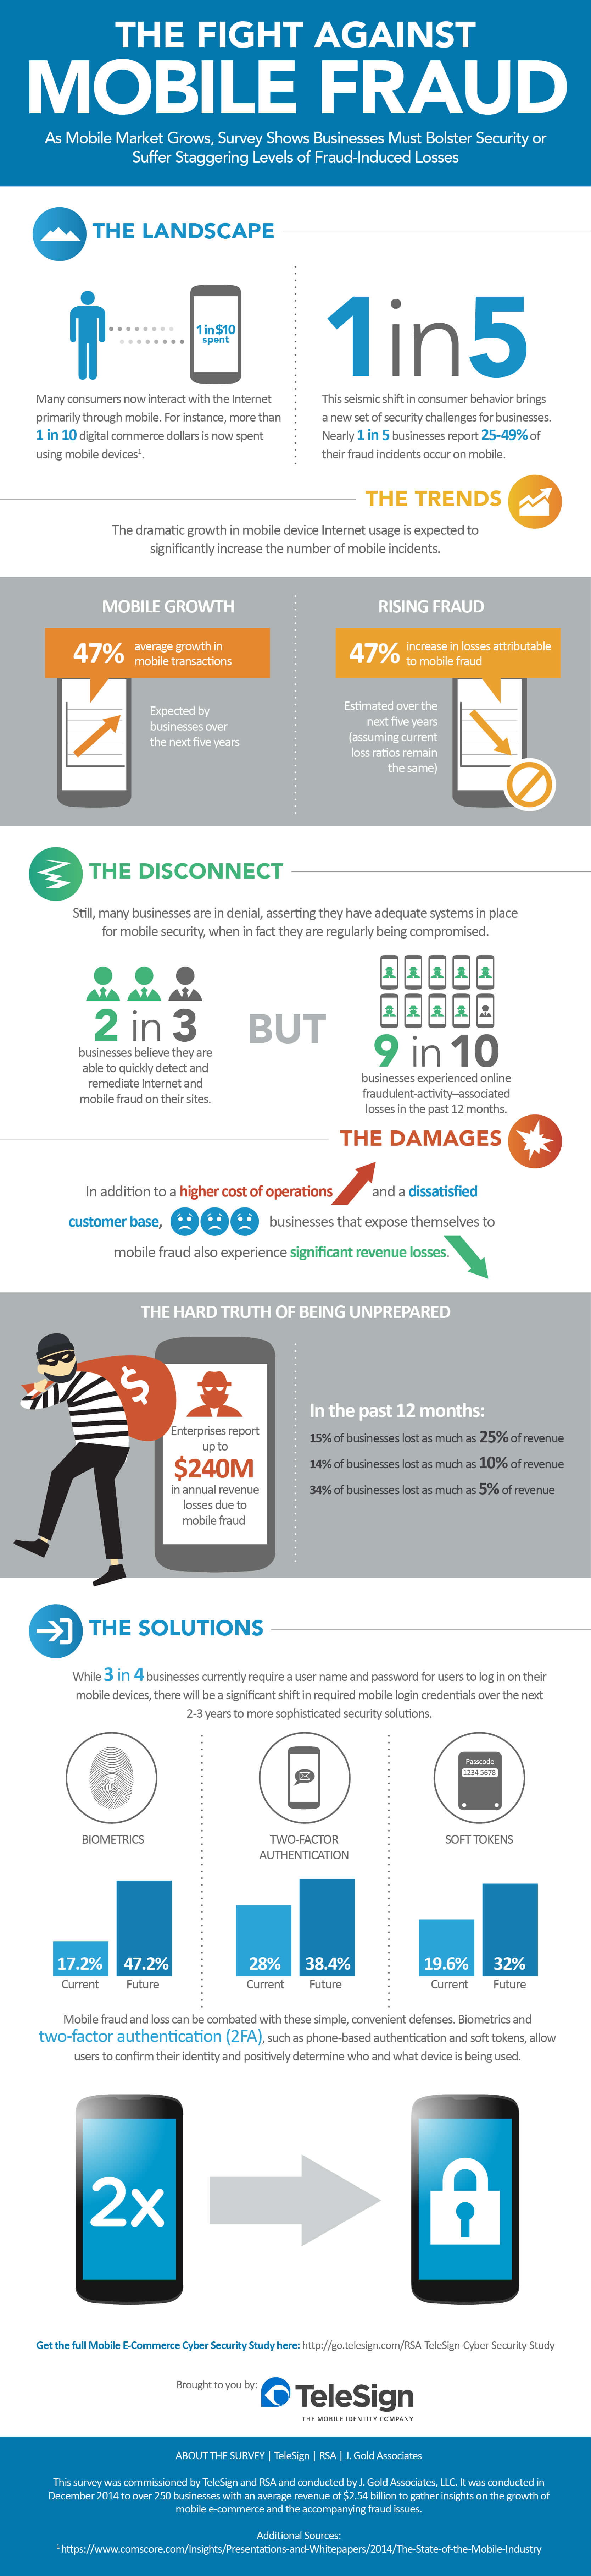 The Fight Against Mobile Fraud infographic